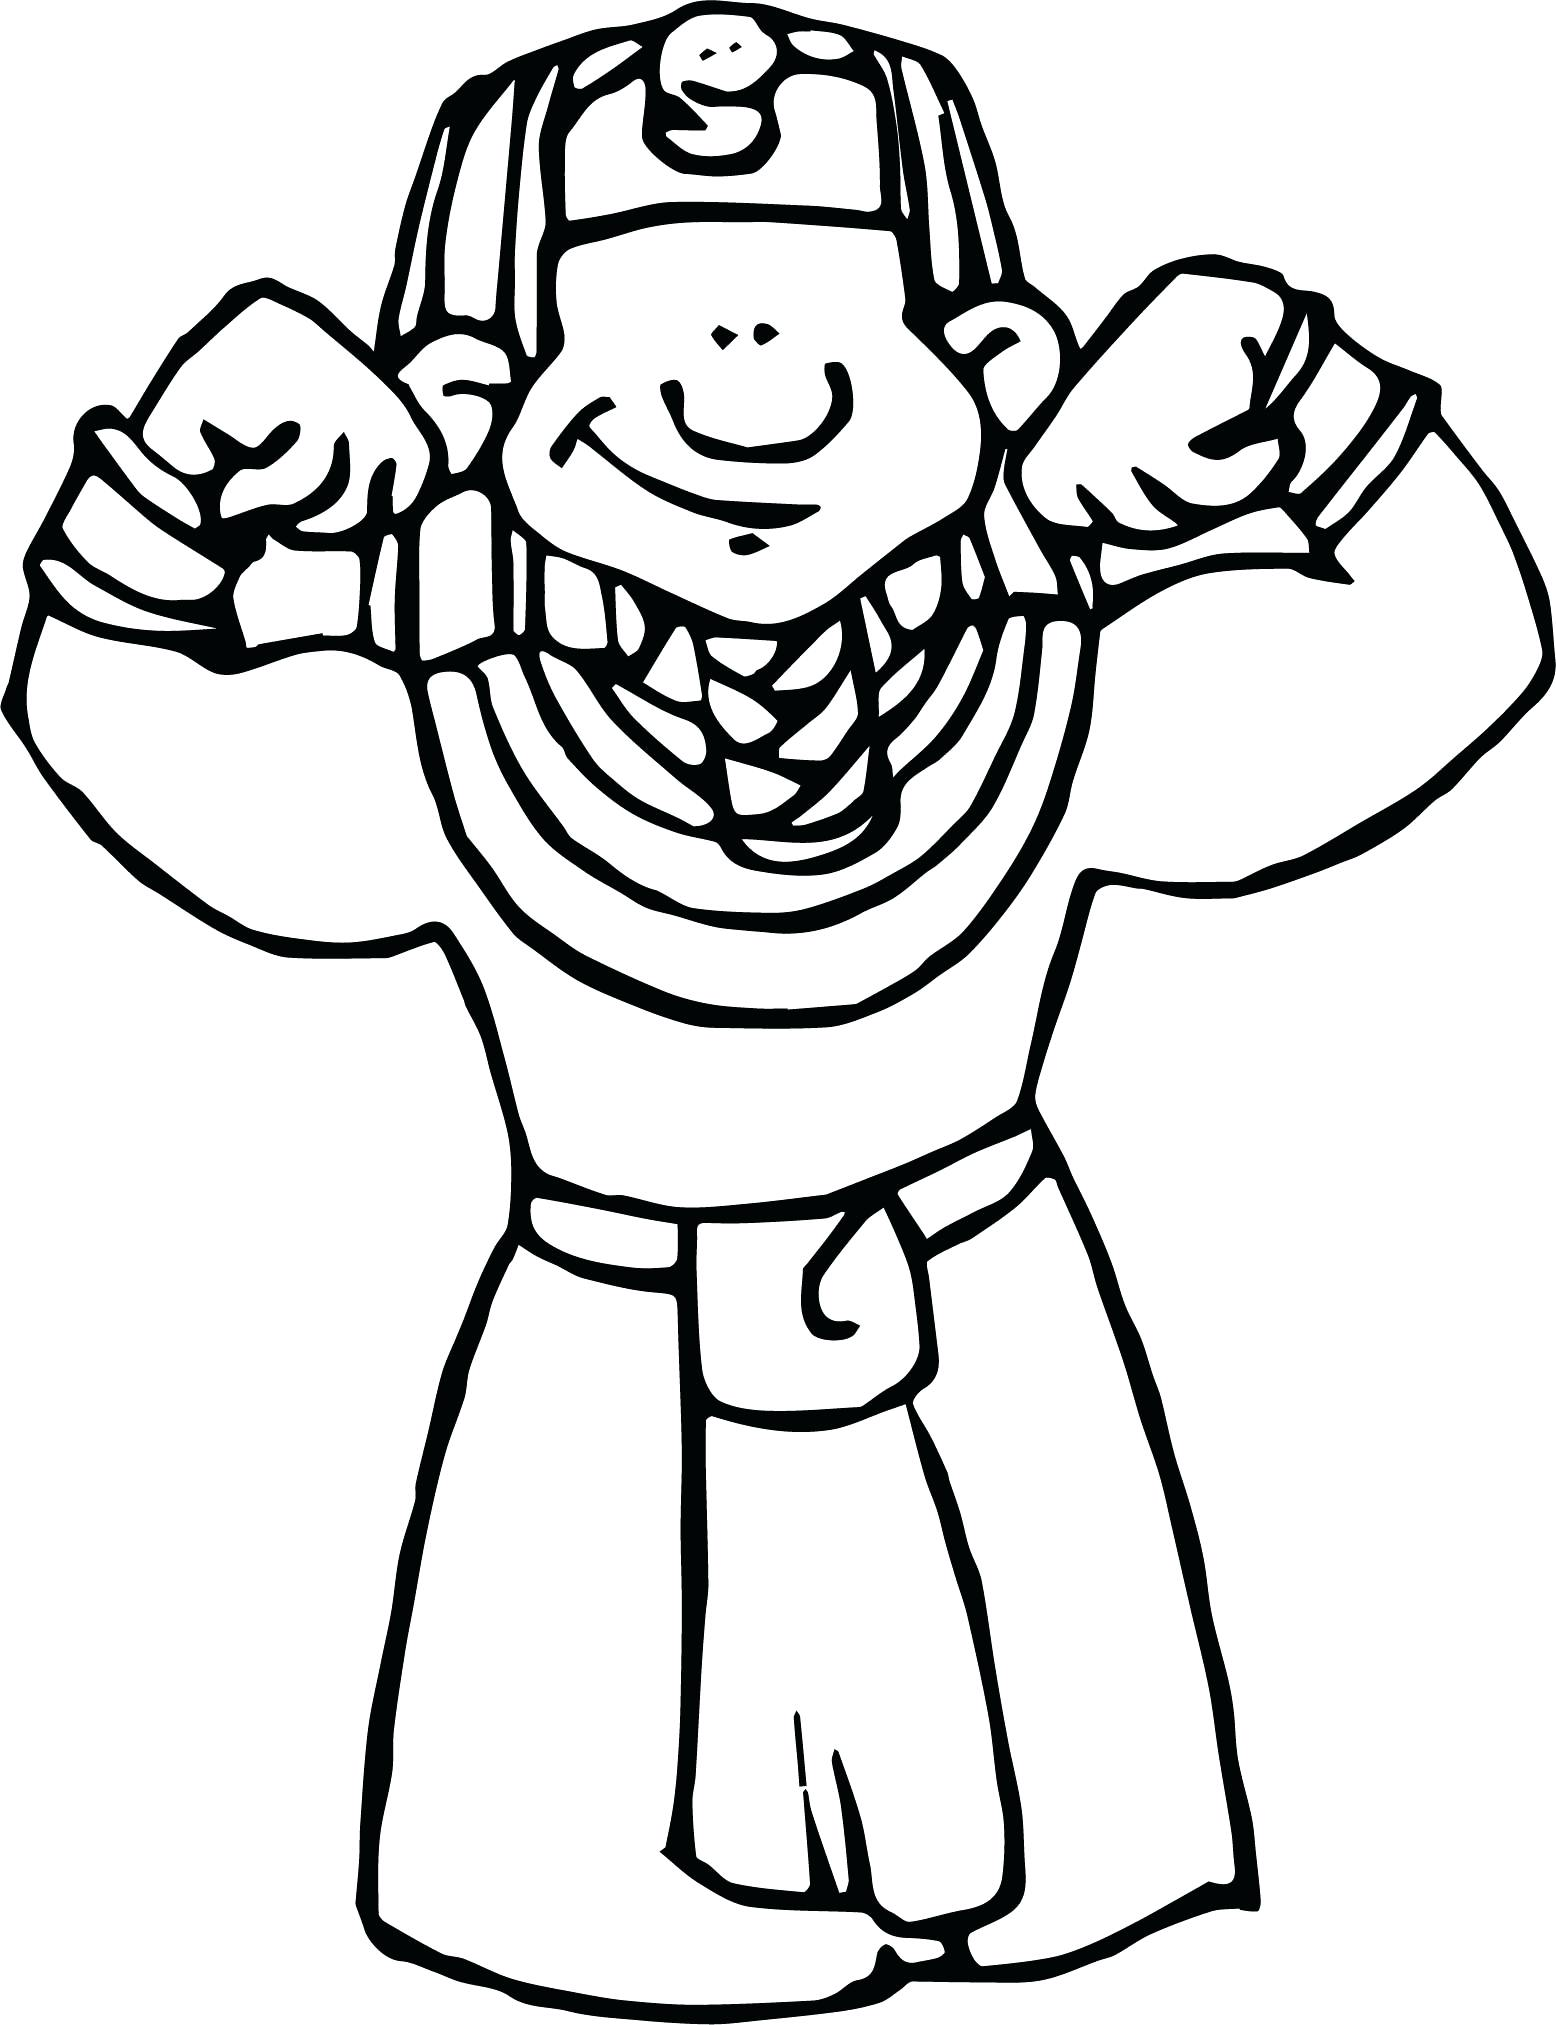 1556x2025 Coloring Ancient Egypt Coloring Page